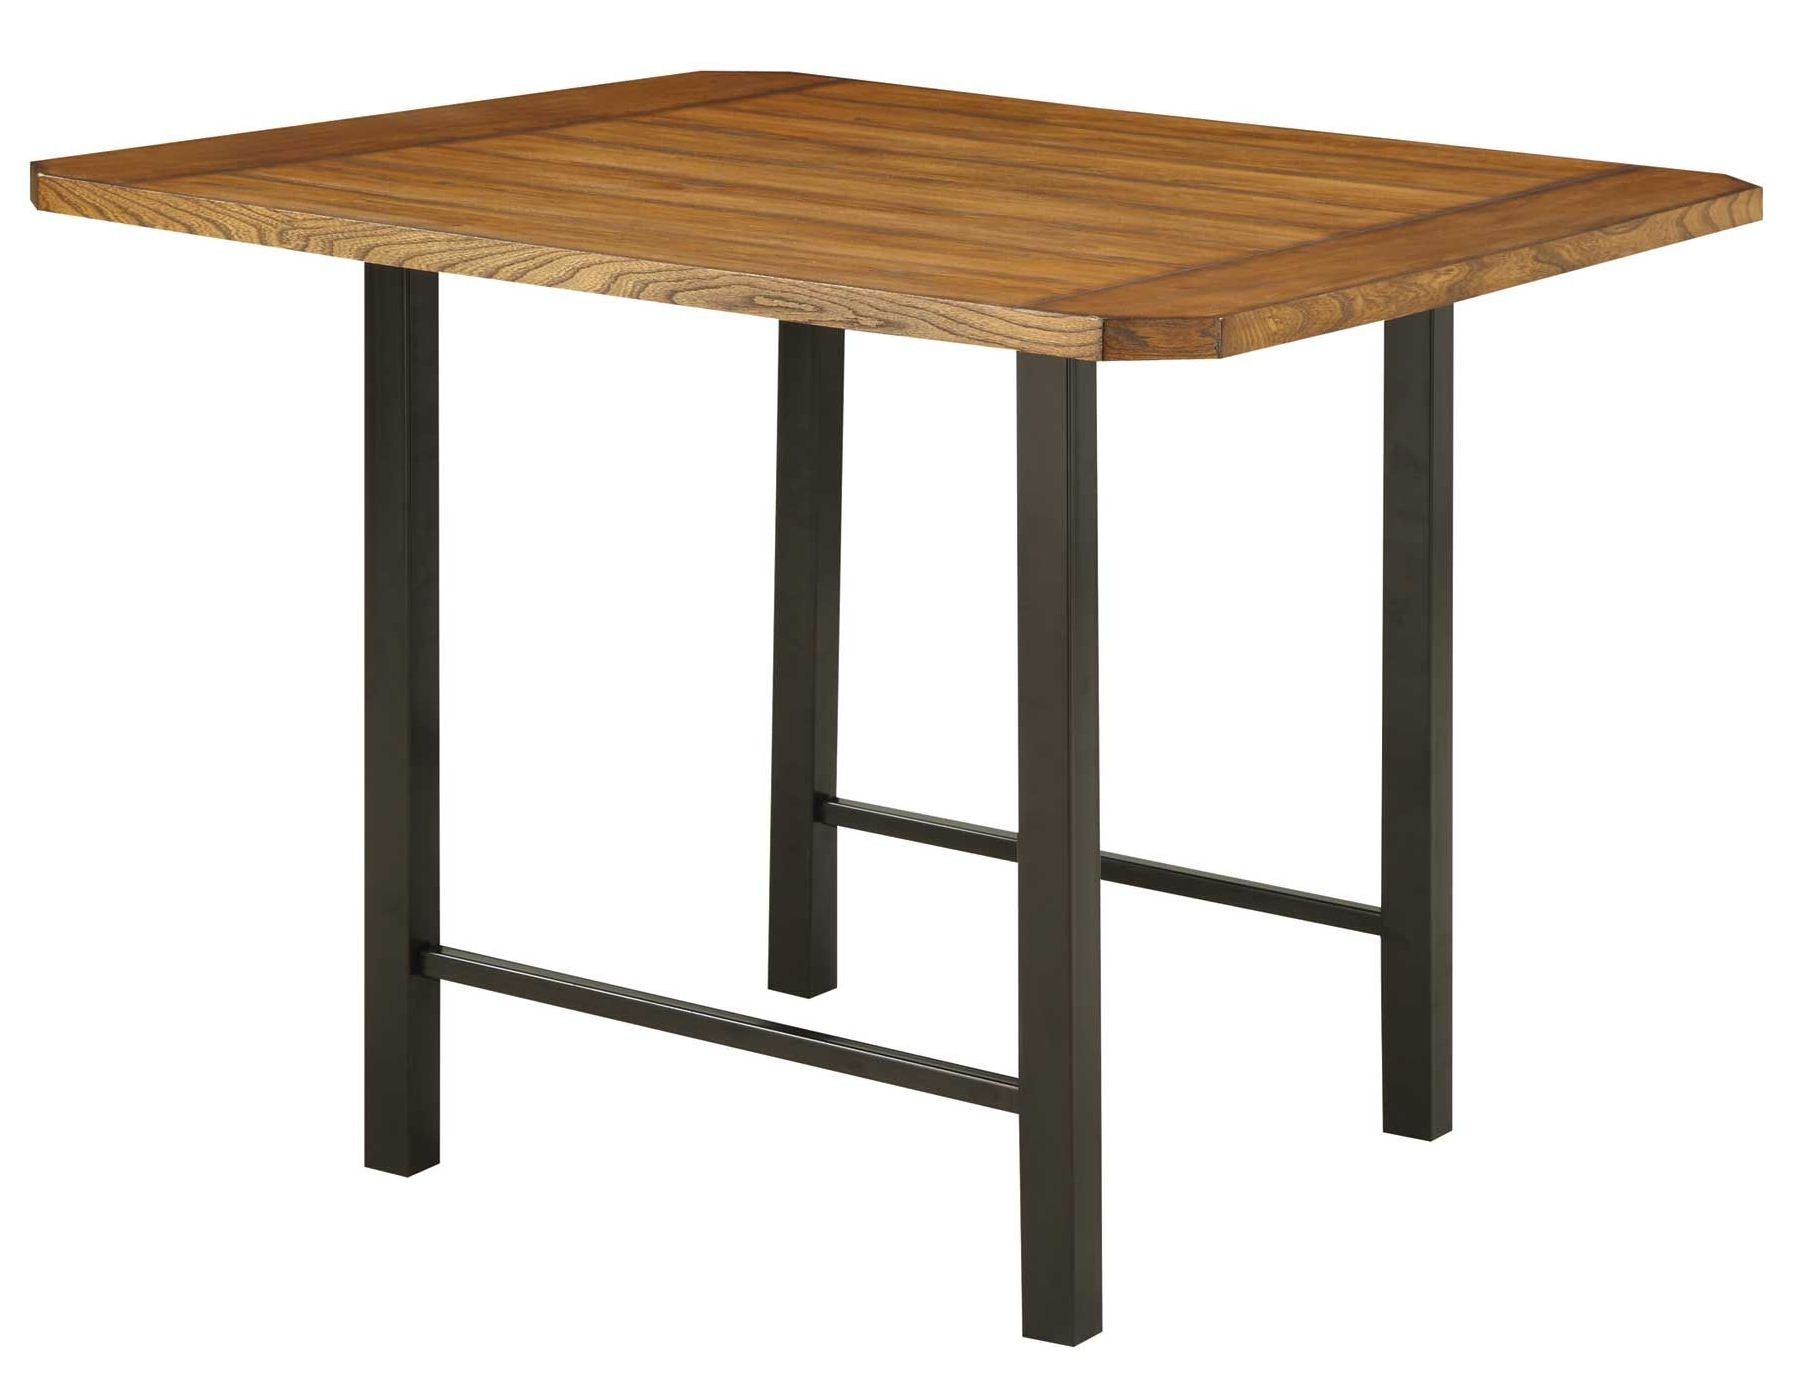 Sheldon Square Counter Height Dining Table From Coaster 121608